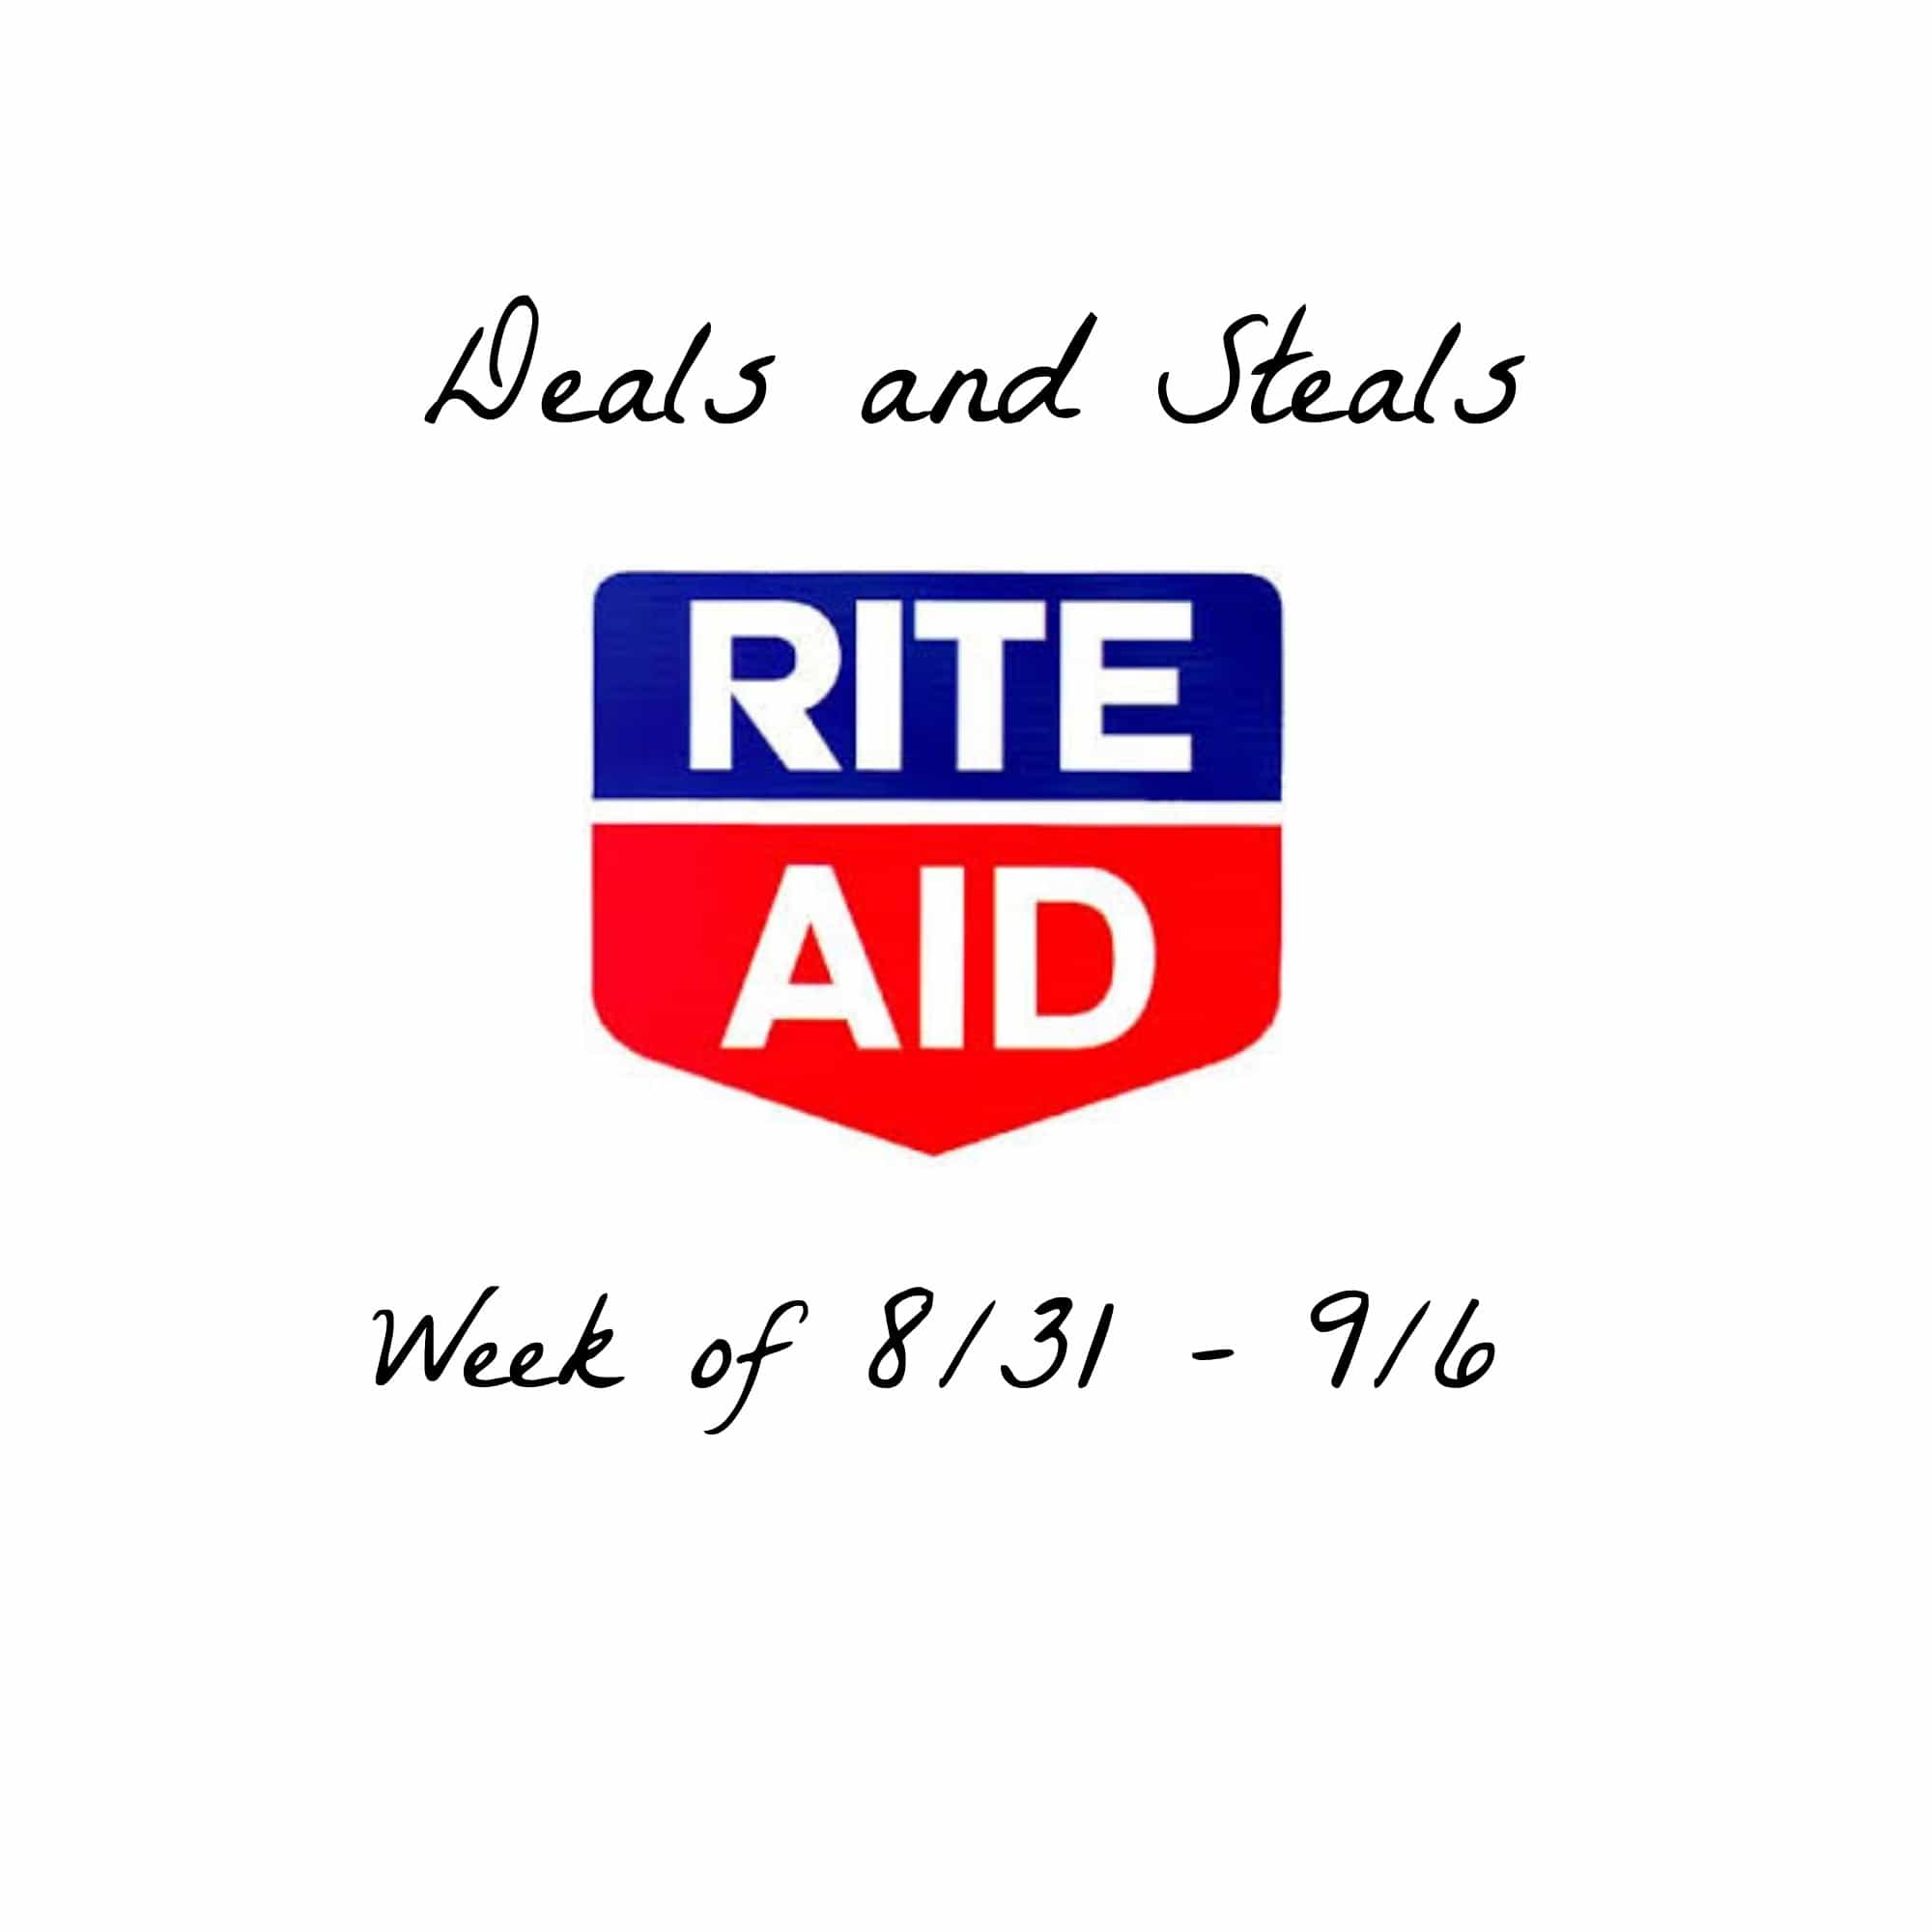 Rite Aid Deals and Steals 8/31-9/6